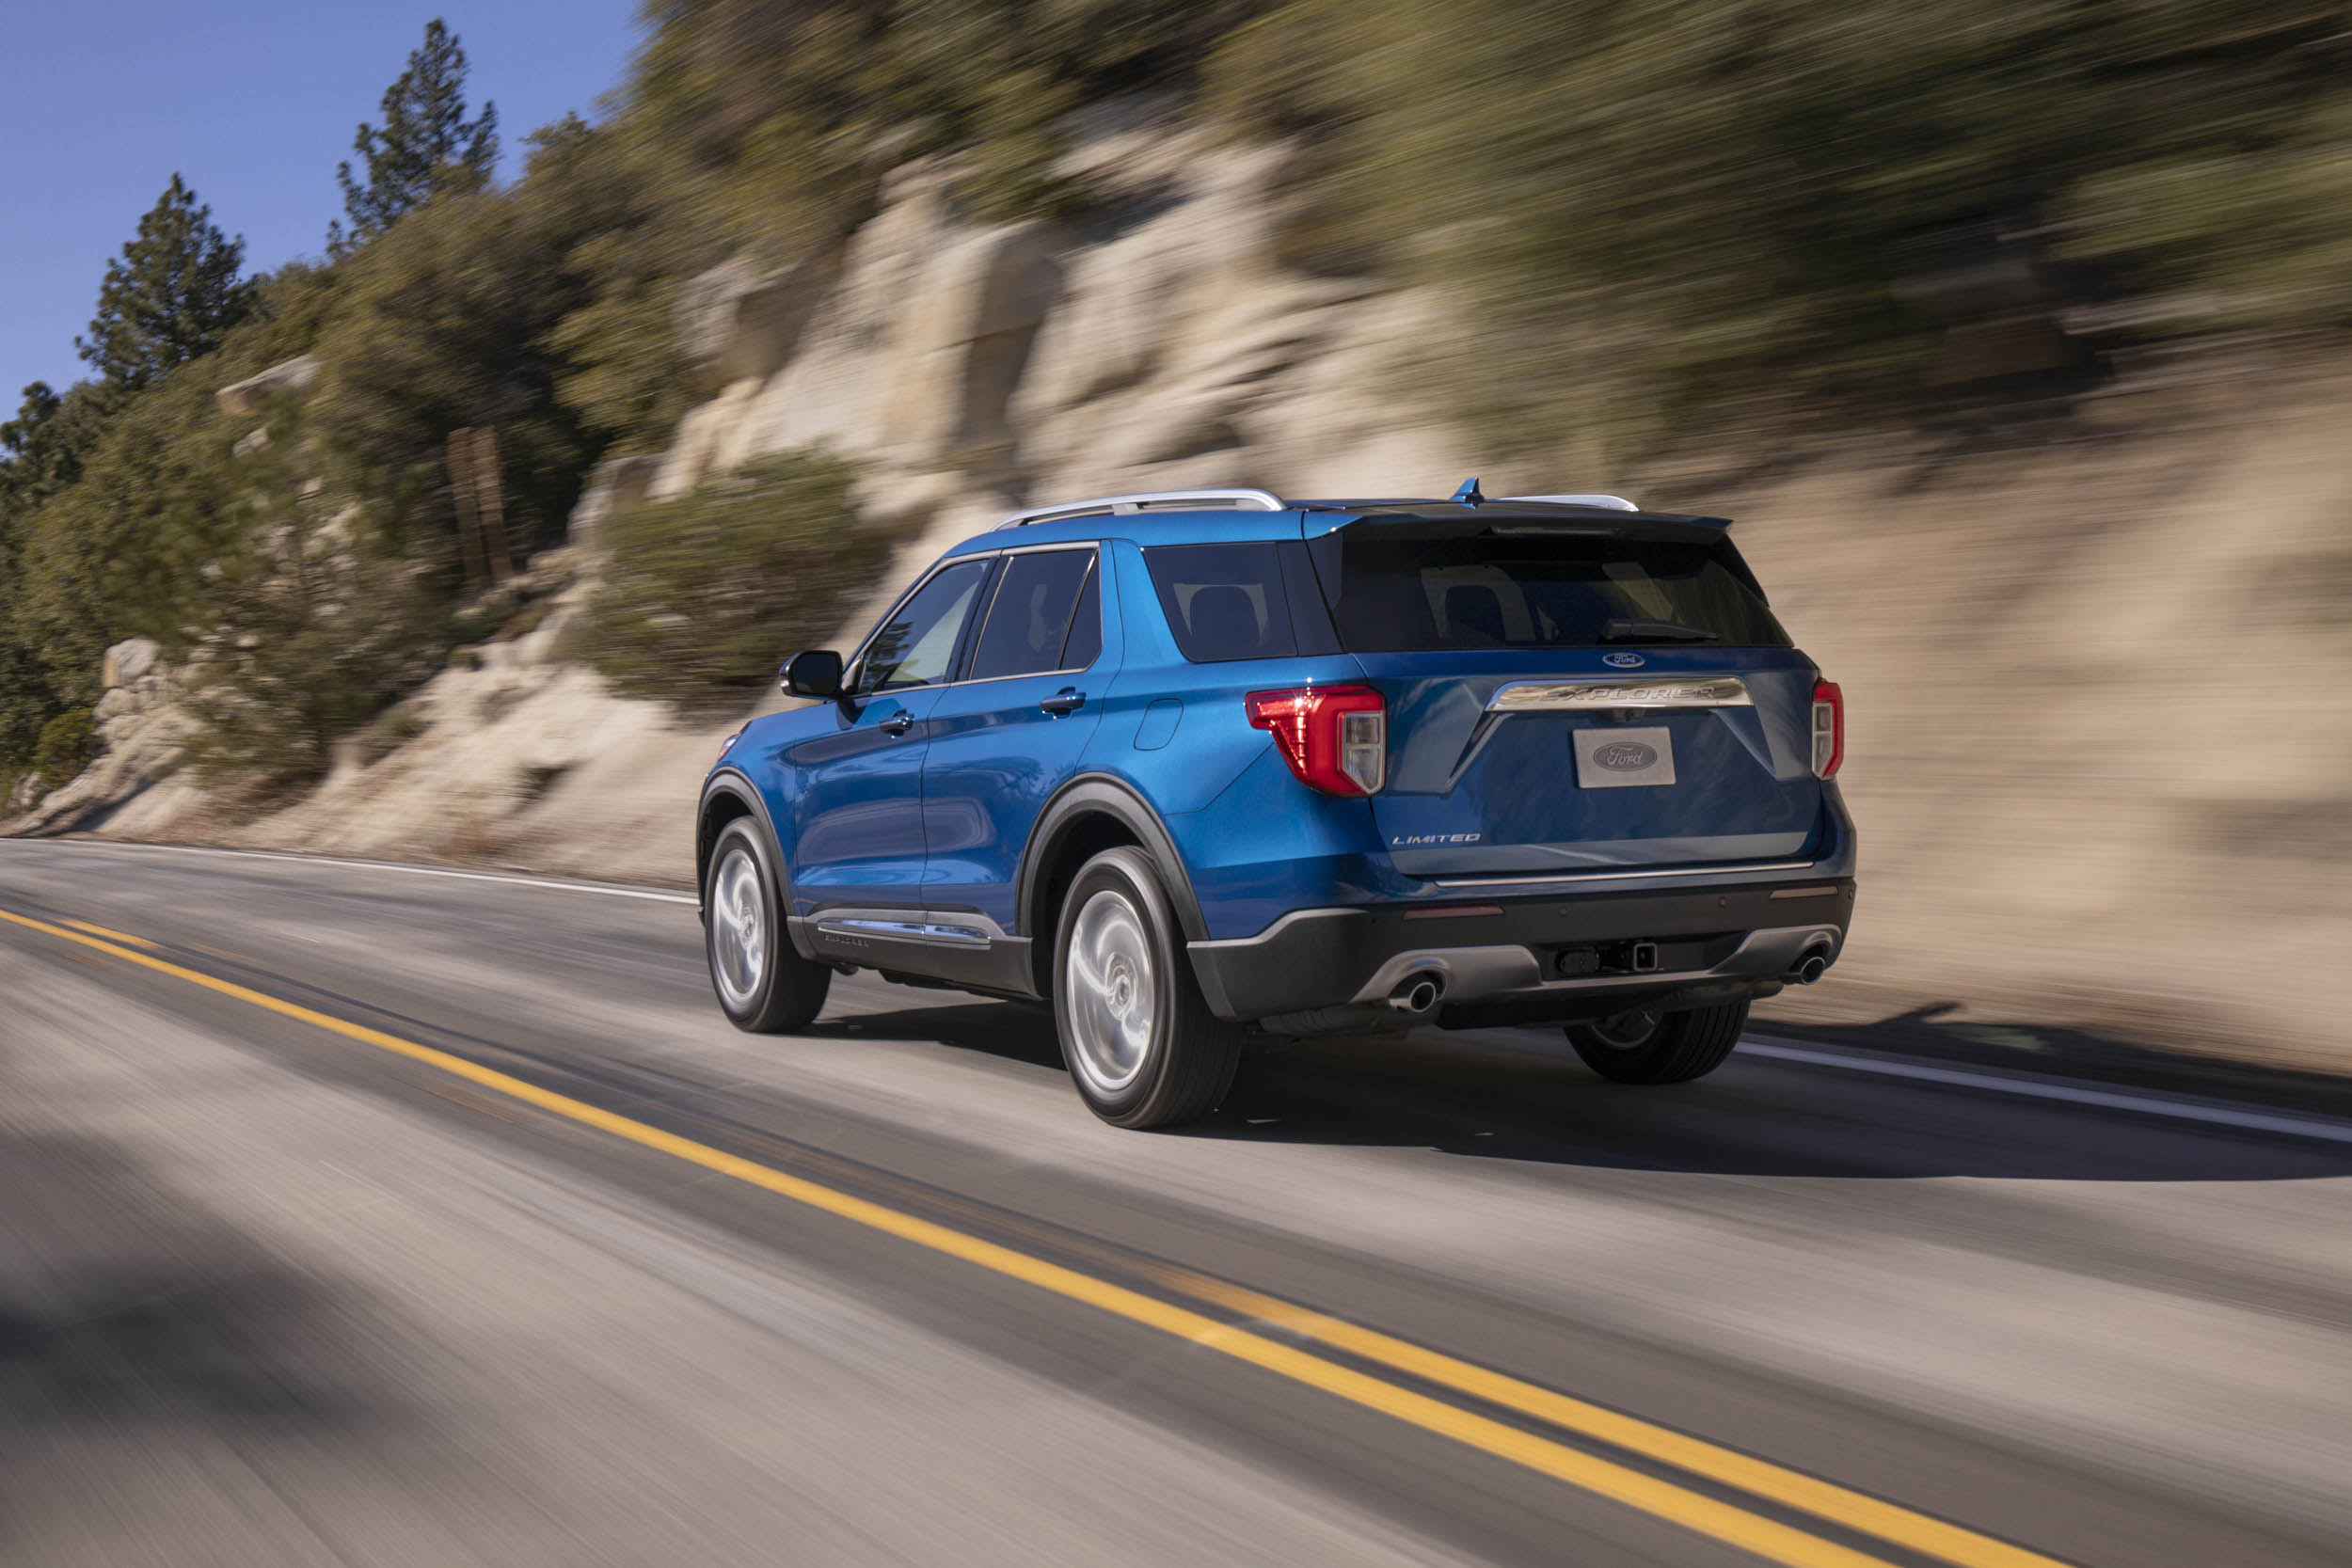 2020 Ford Explorer Limited rear 3/4